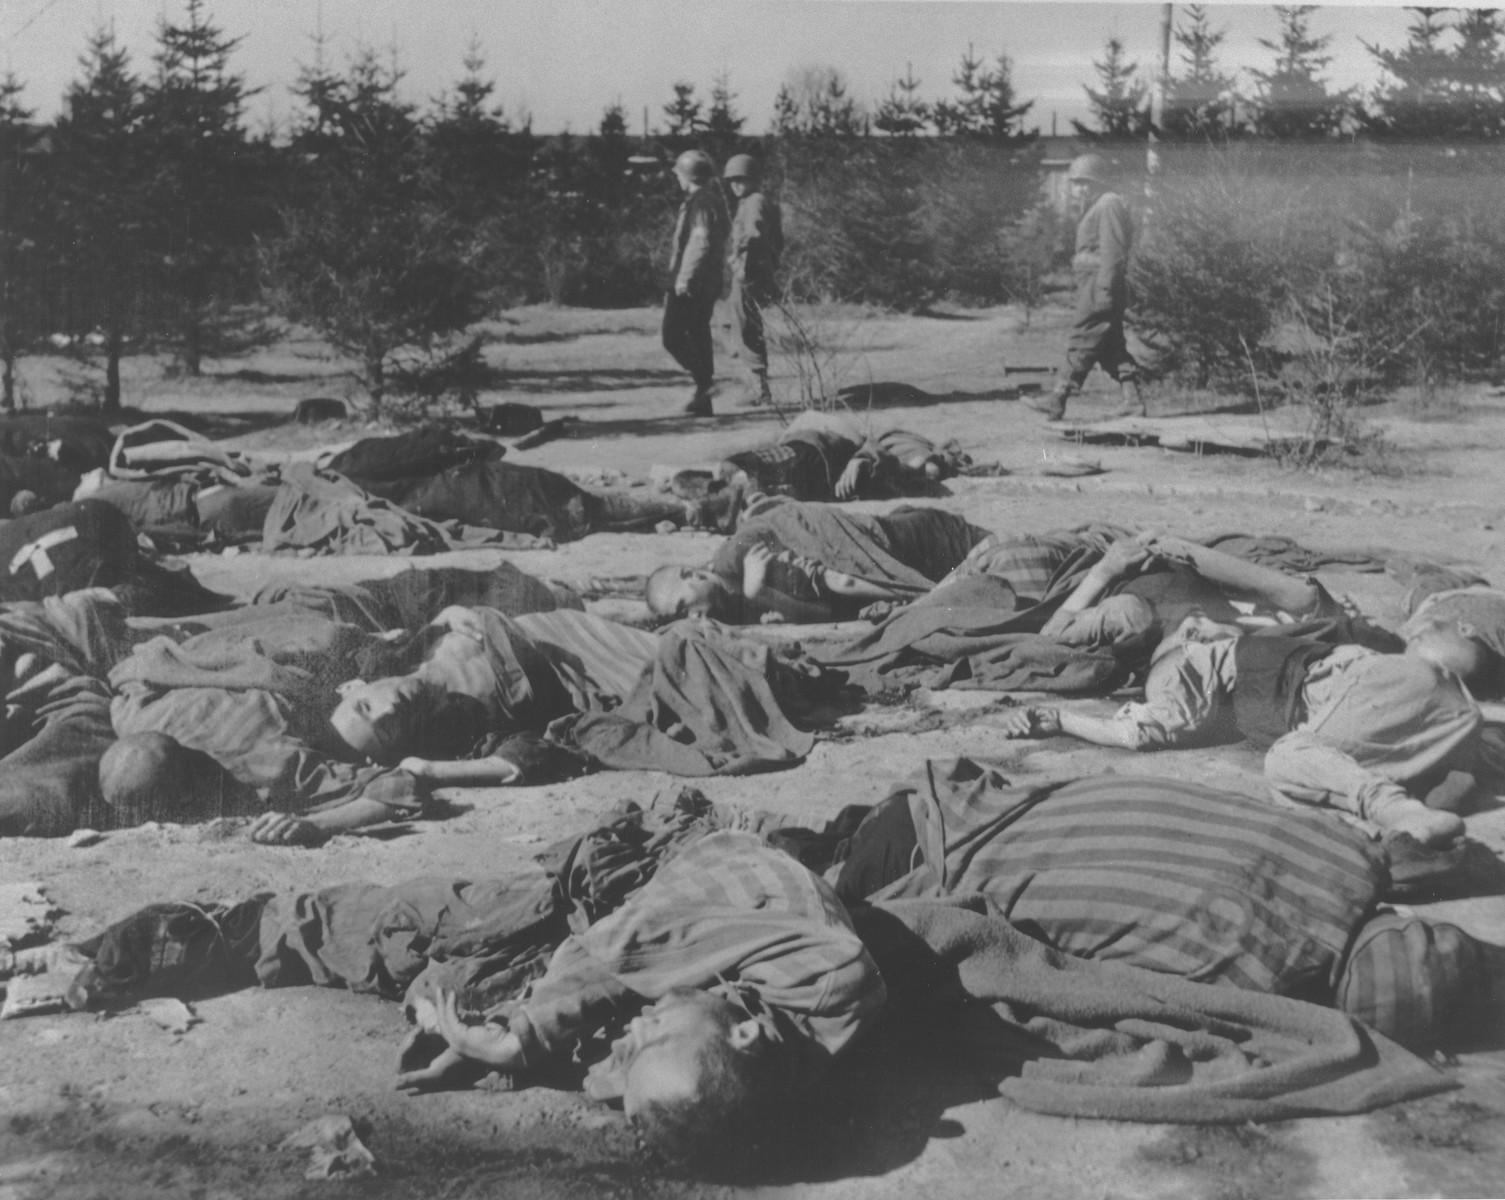 American soldiers walk past the bodies of Ohrdruf prisoners who were killed during the evacuation of the concentration camp.